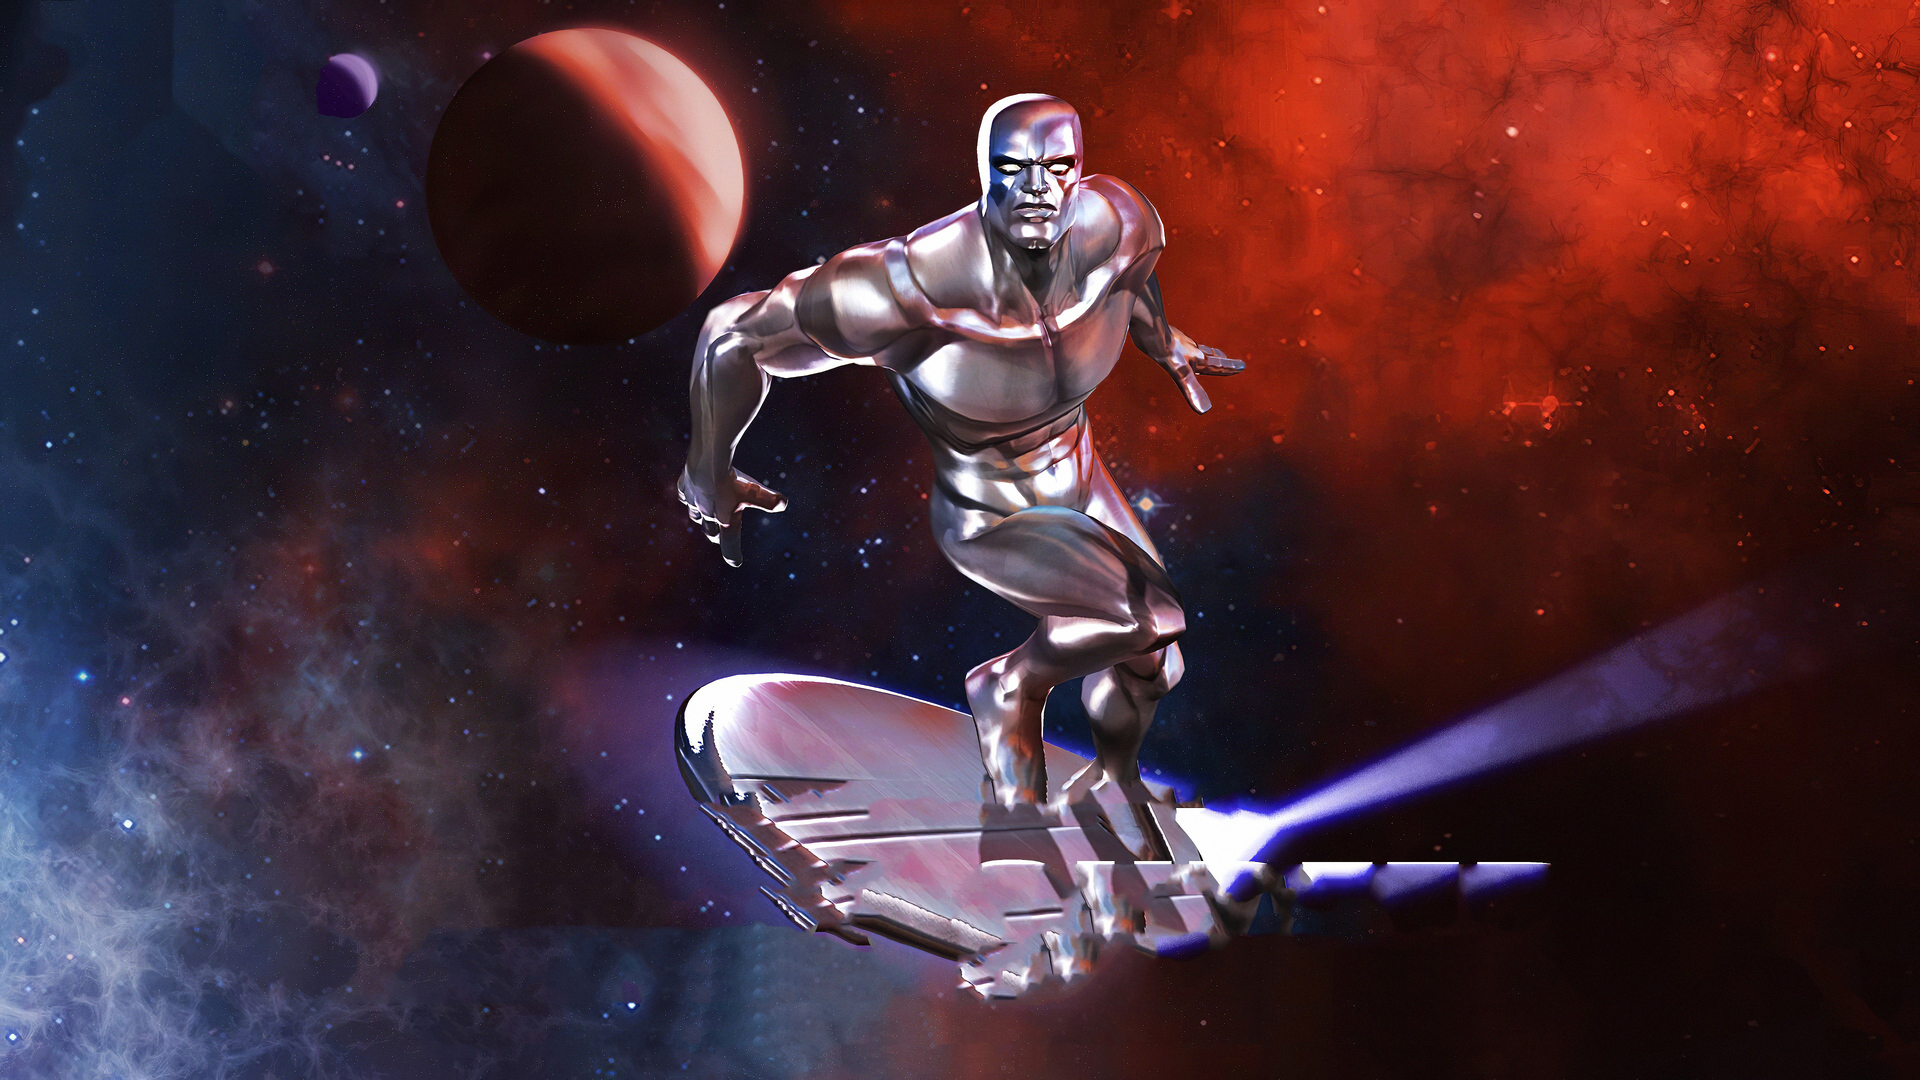 1920x1080 Silver Surfer Marvel Contest Of Champions 4k Laptop Full